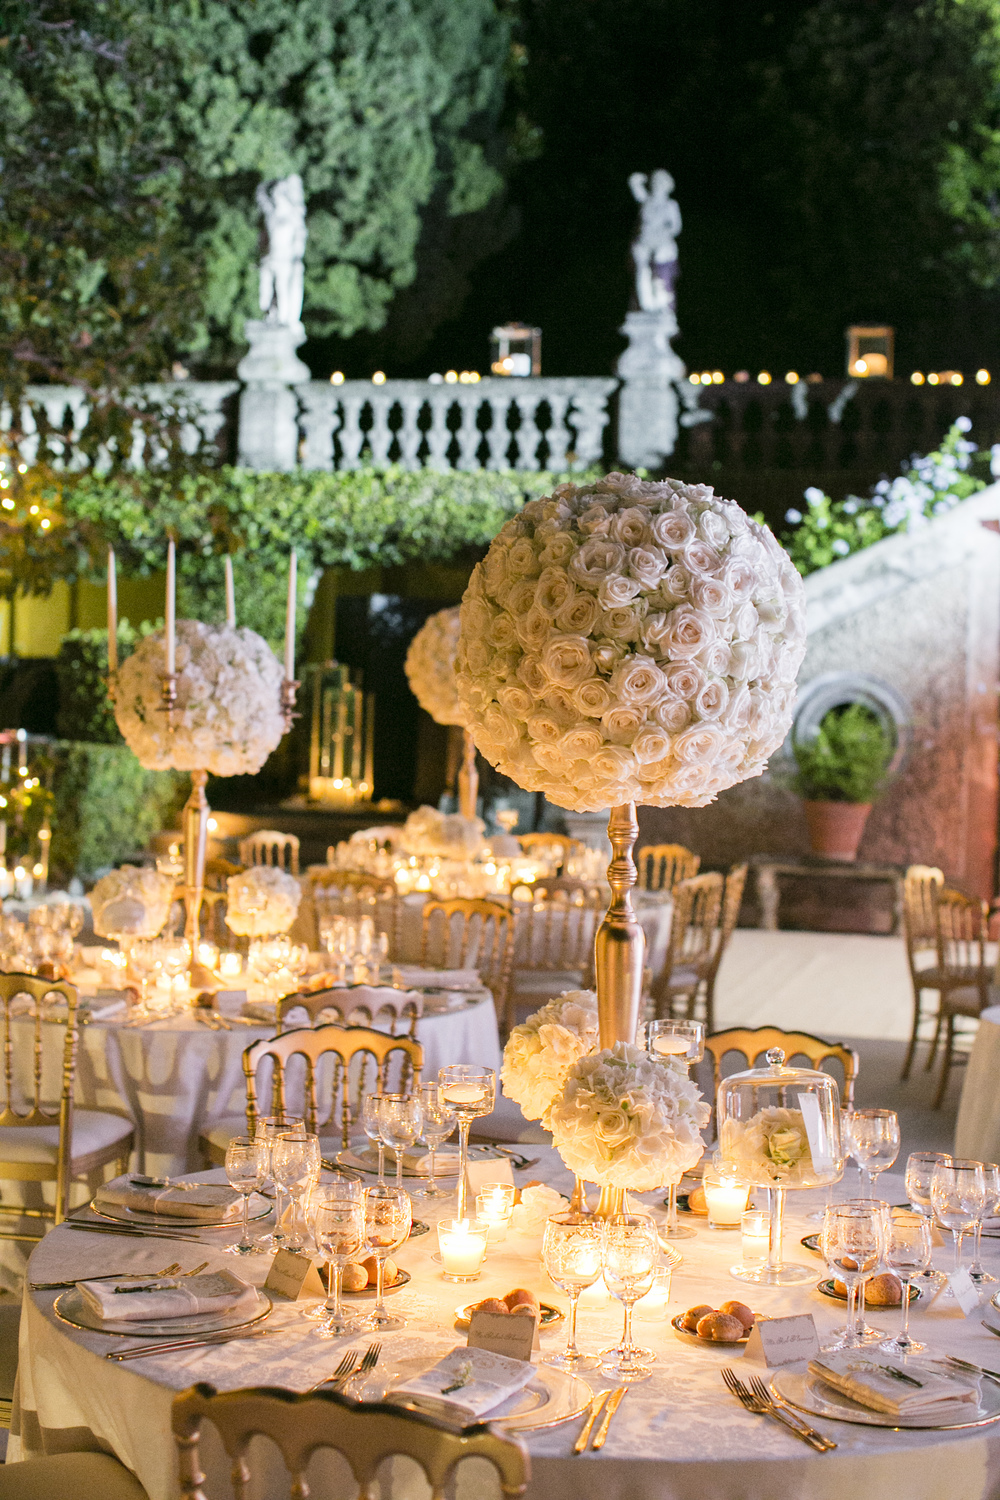 Ceci_New_York_Wedding_Lake_Como_Italy_Luxury_Style_Real_Bride_100.jpg